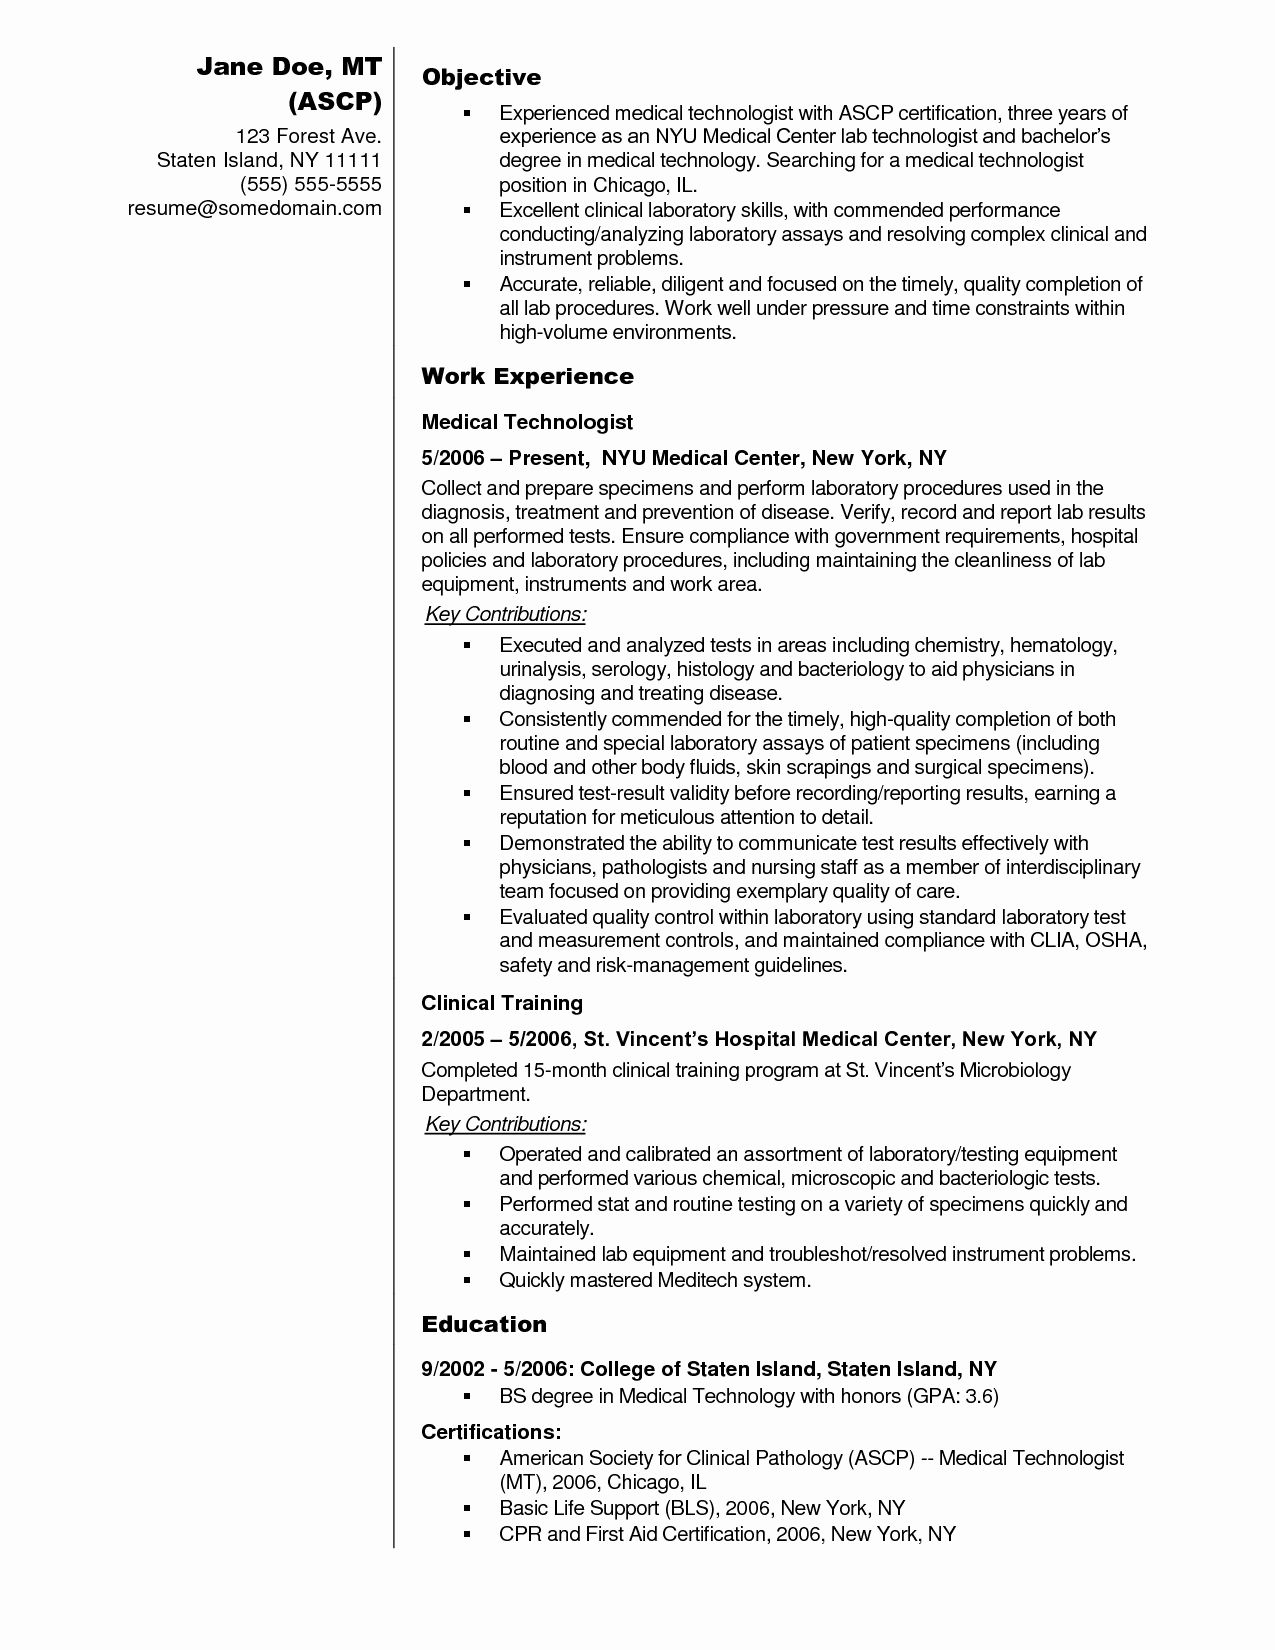 clinical laboratory scientist resume awesome sample medical technologist examples lab Resume Medical Lab Scientist Resume